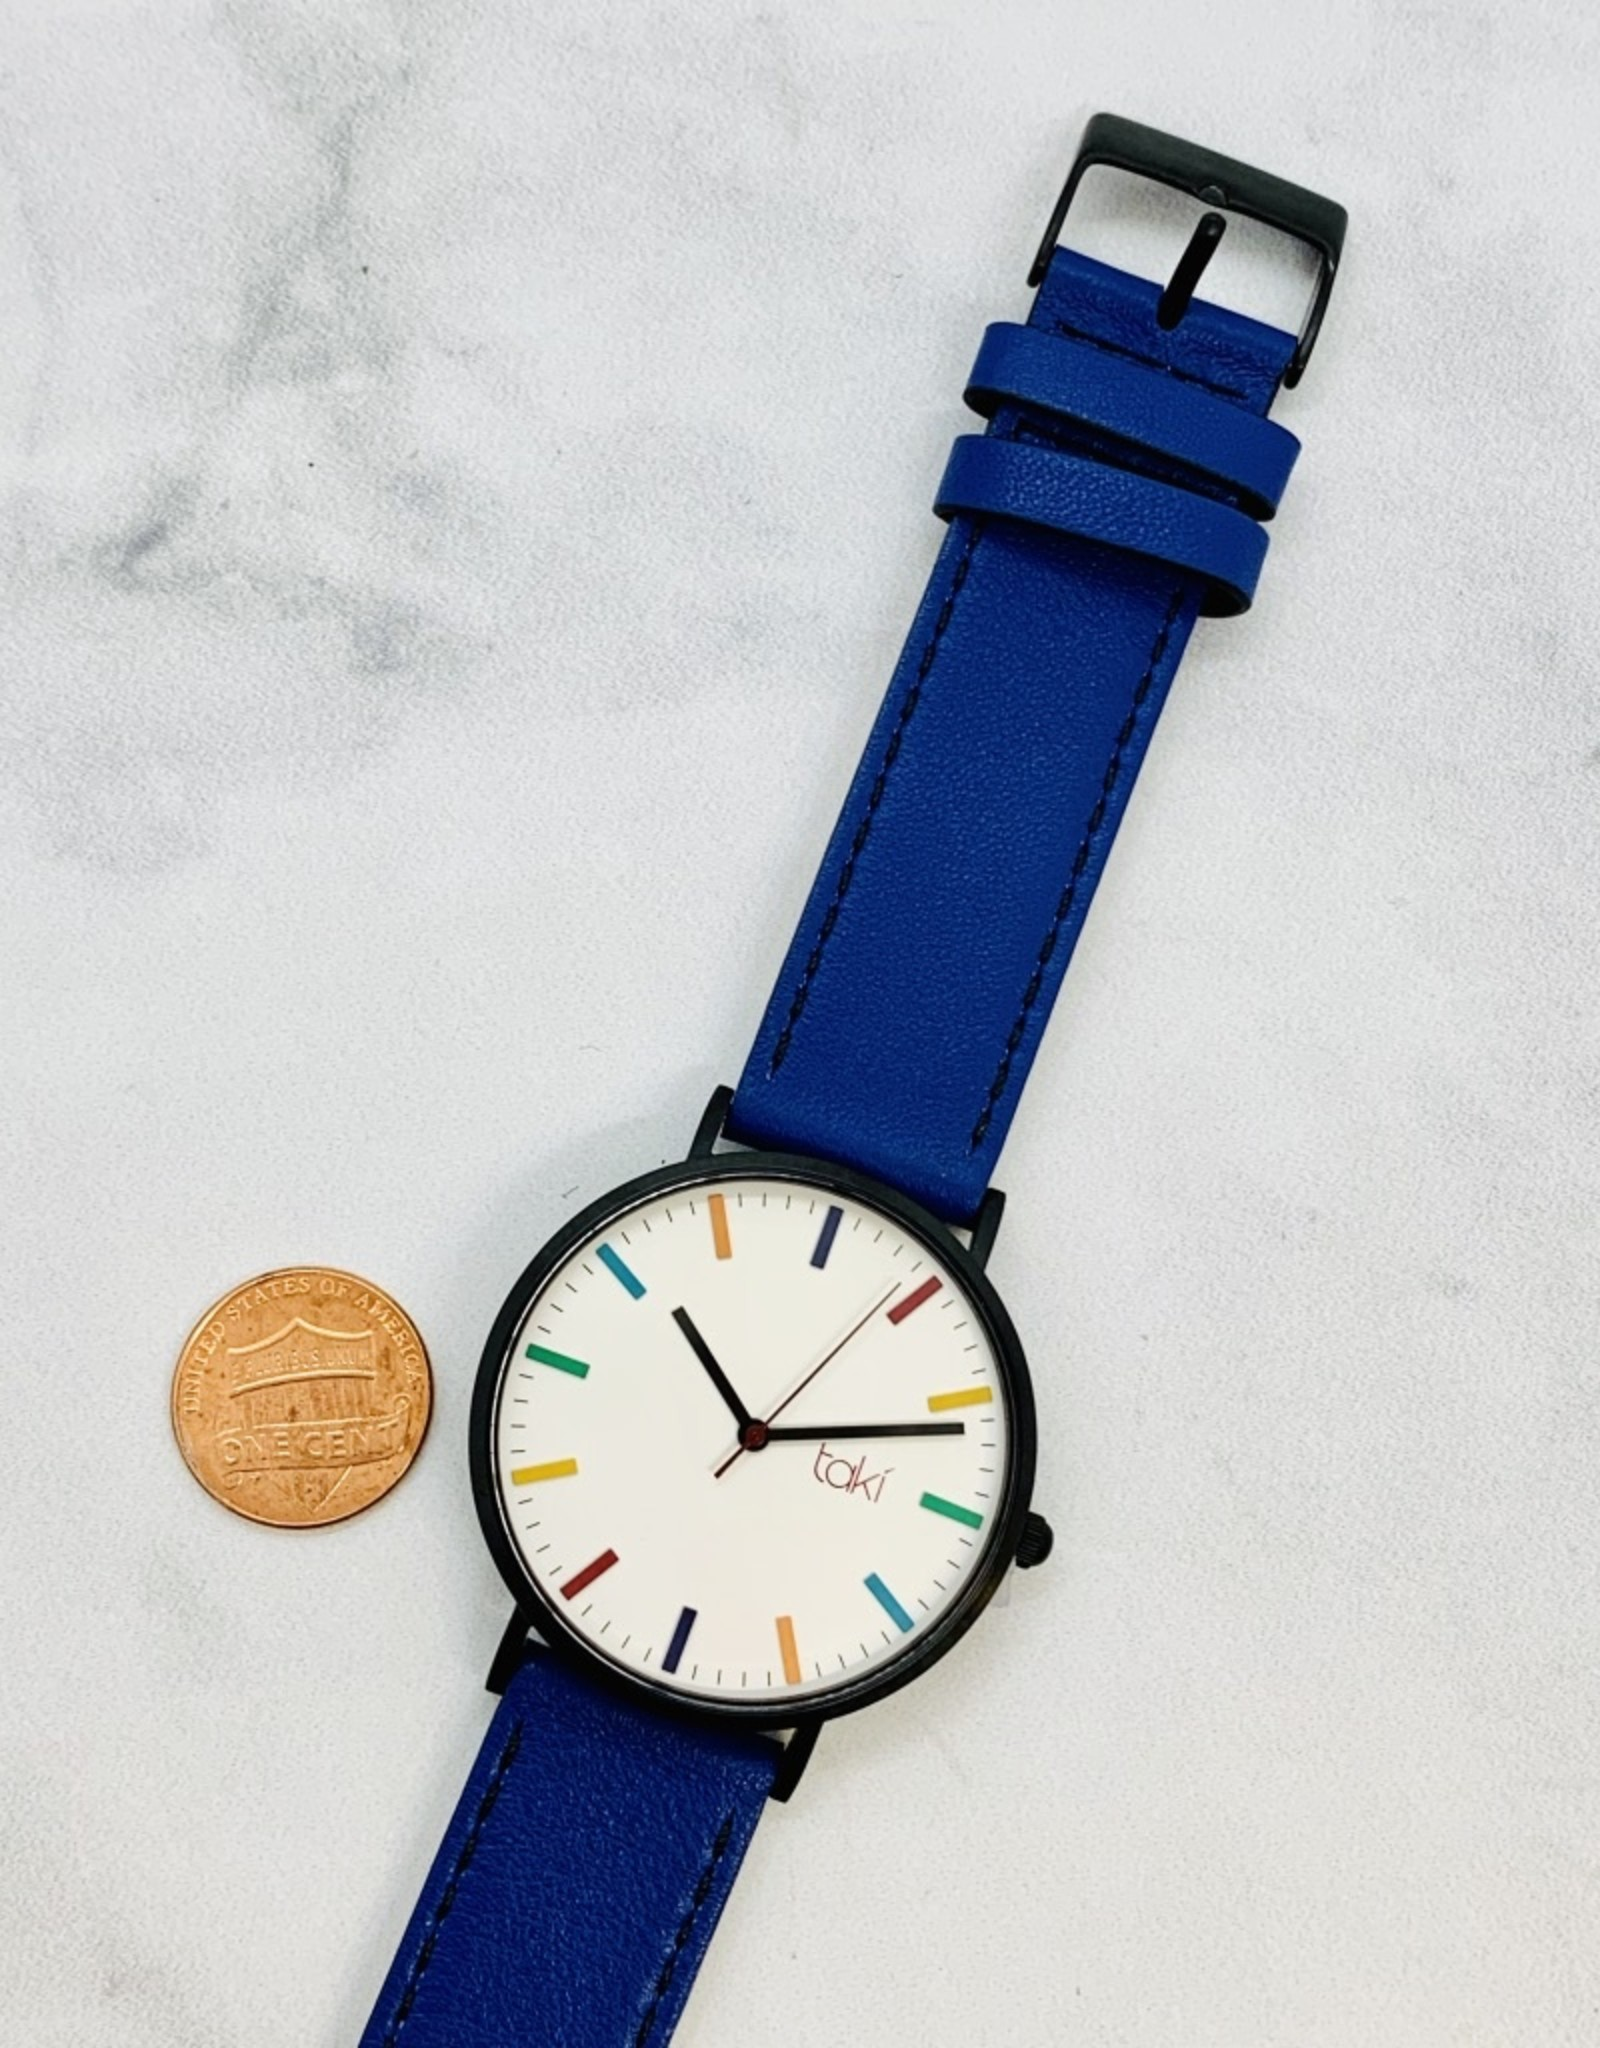 Linden Watch, White Face and Royal Blue Band with a Rainbow of indicators